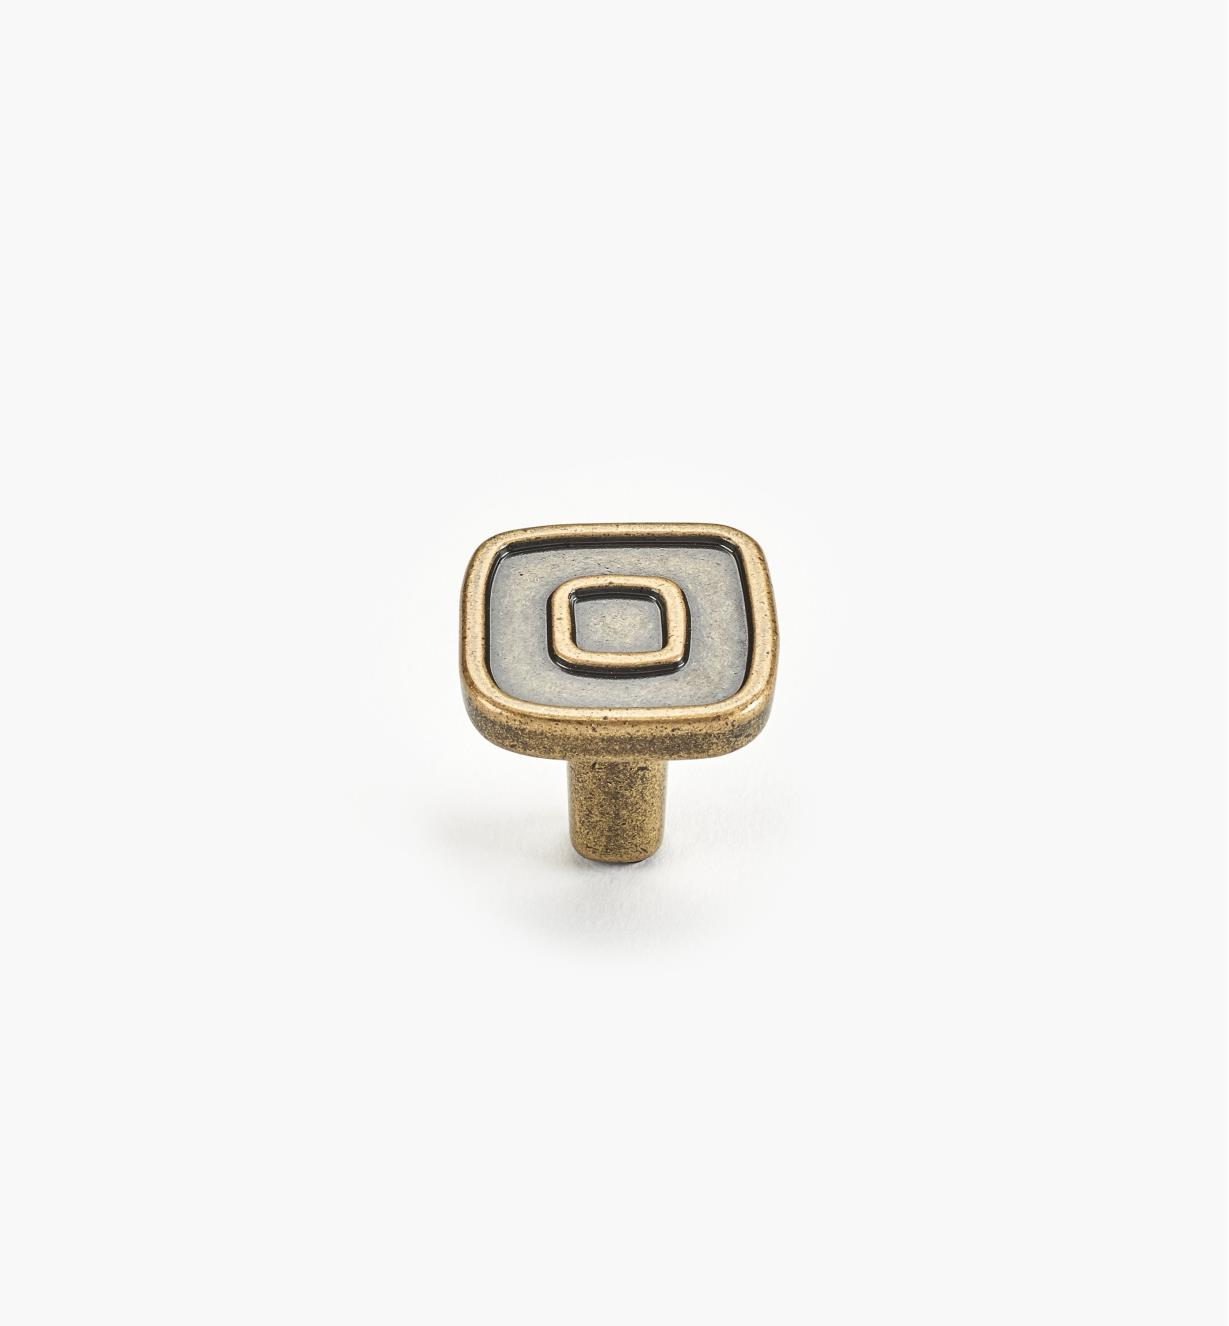 00A7513 - Infill Suite - 30mm Small Antique Brass Knob